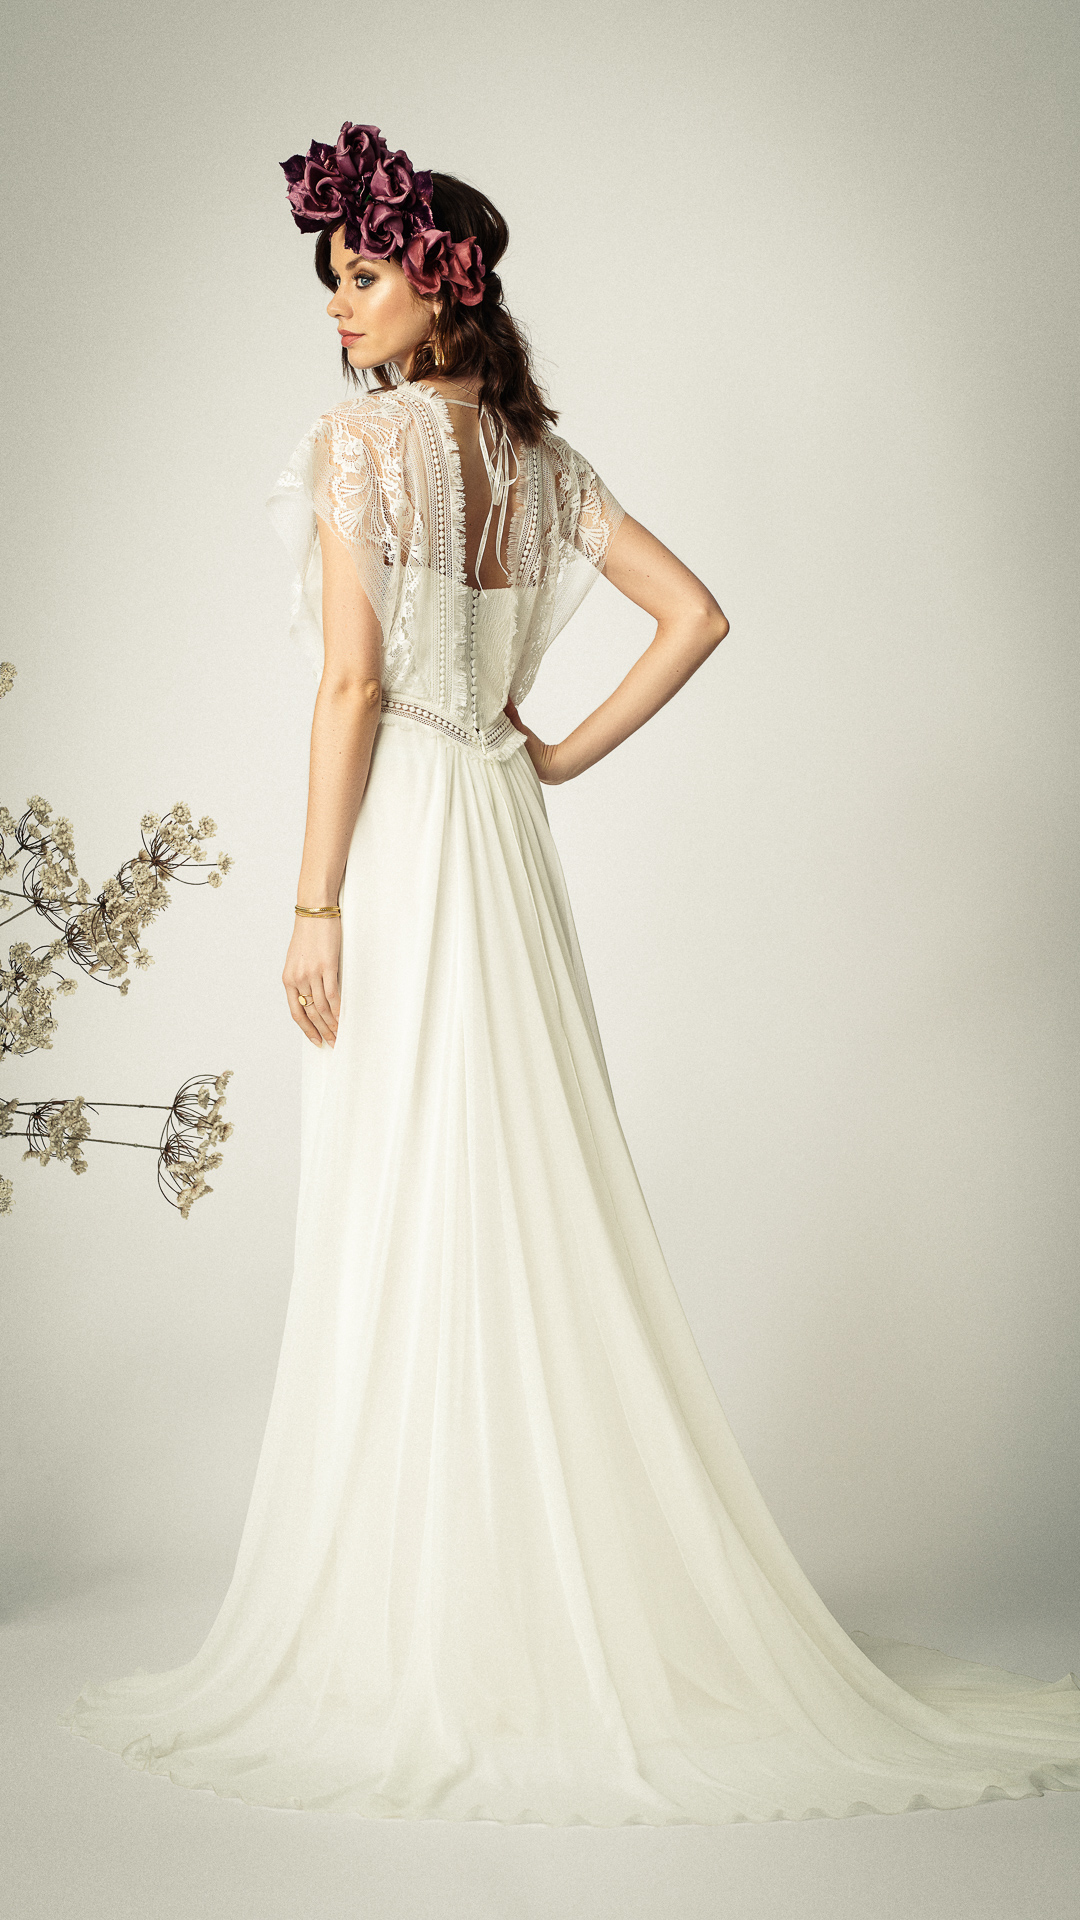 Rembo-Styling-2020-Brideberry-3-hr